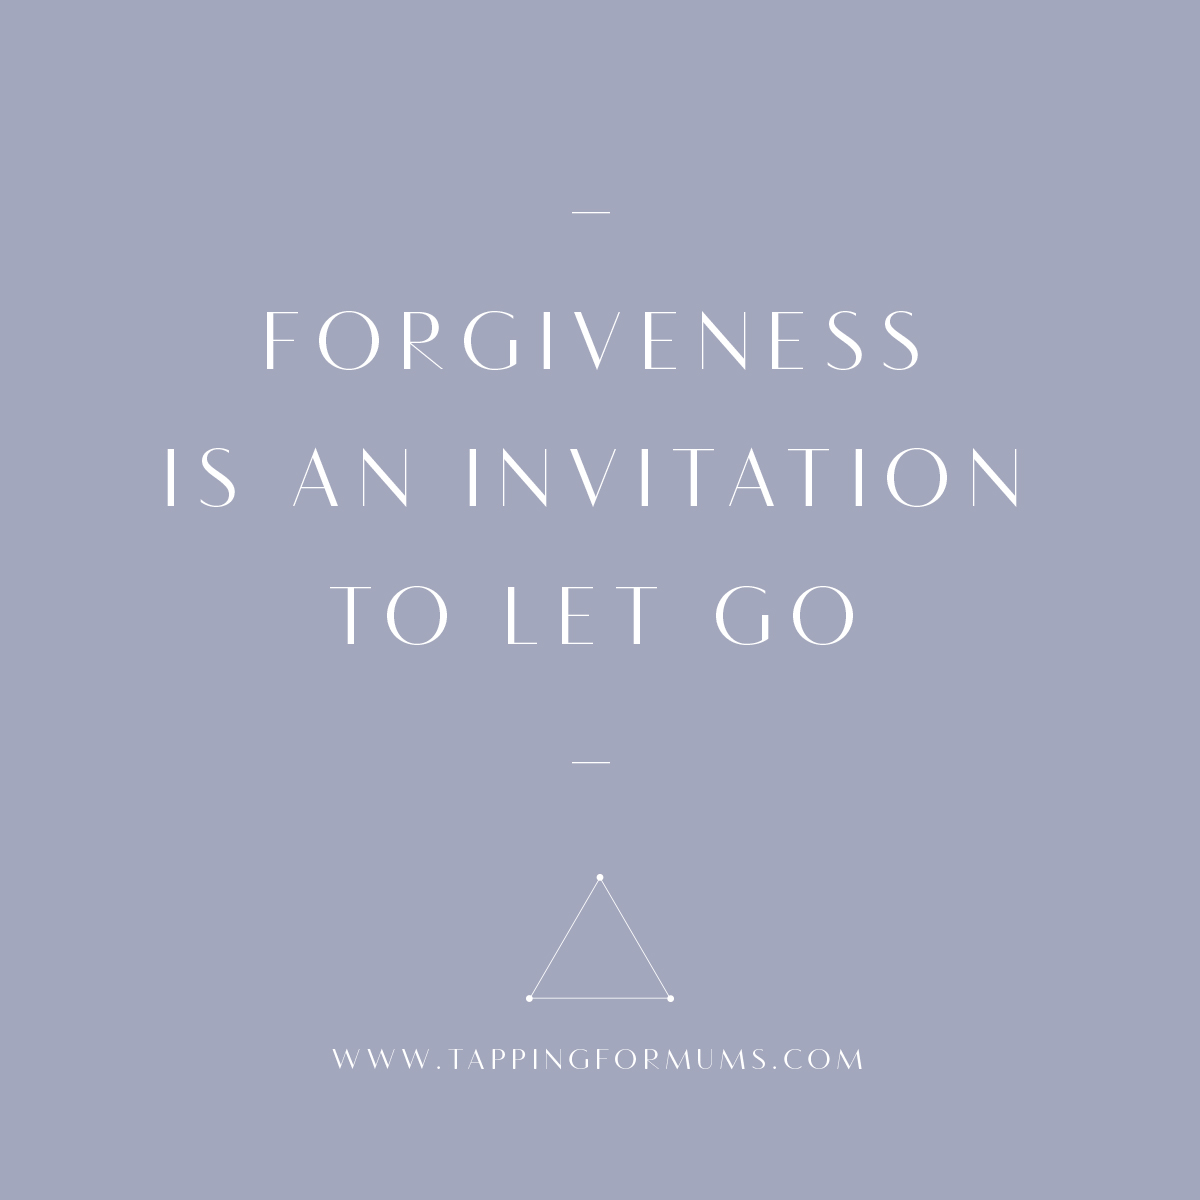 Forgiveness-is-an-invitation-to-let-go.jpg